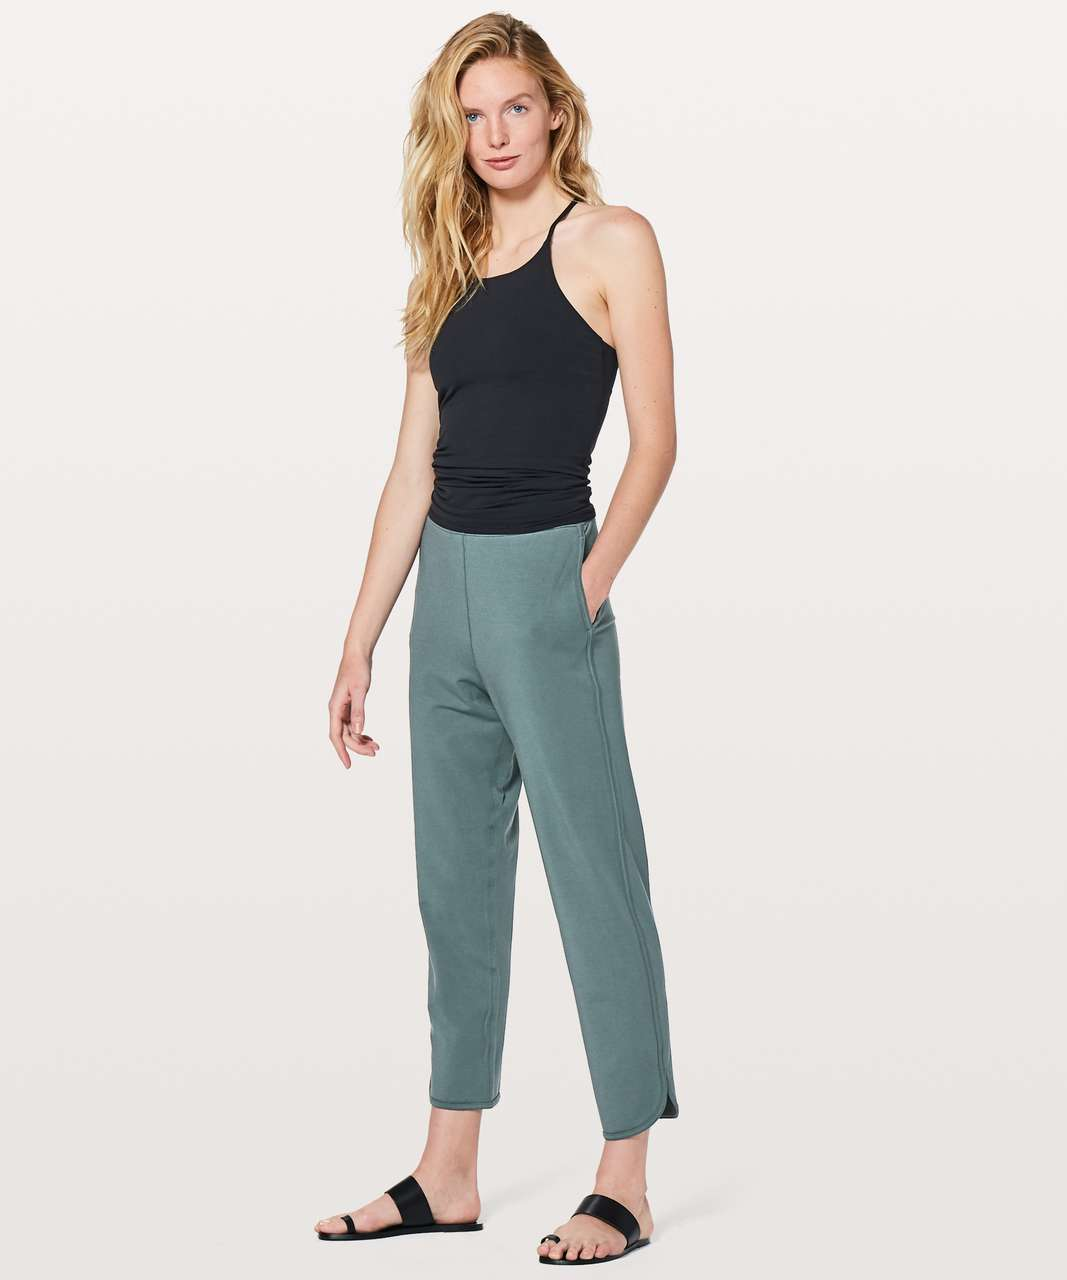 "Lululemon Every Moment Pant *26"" - Sea Steel"